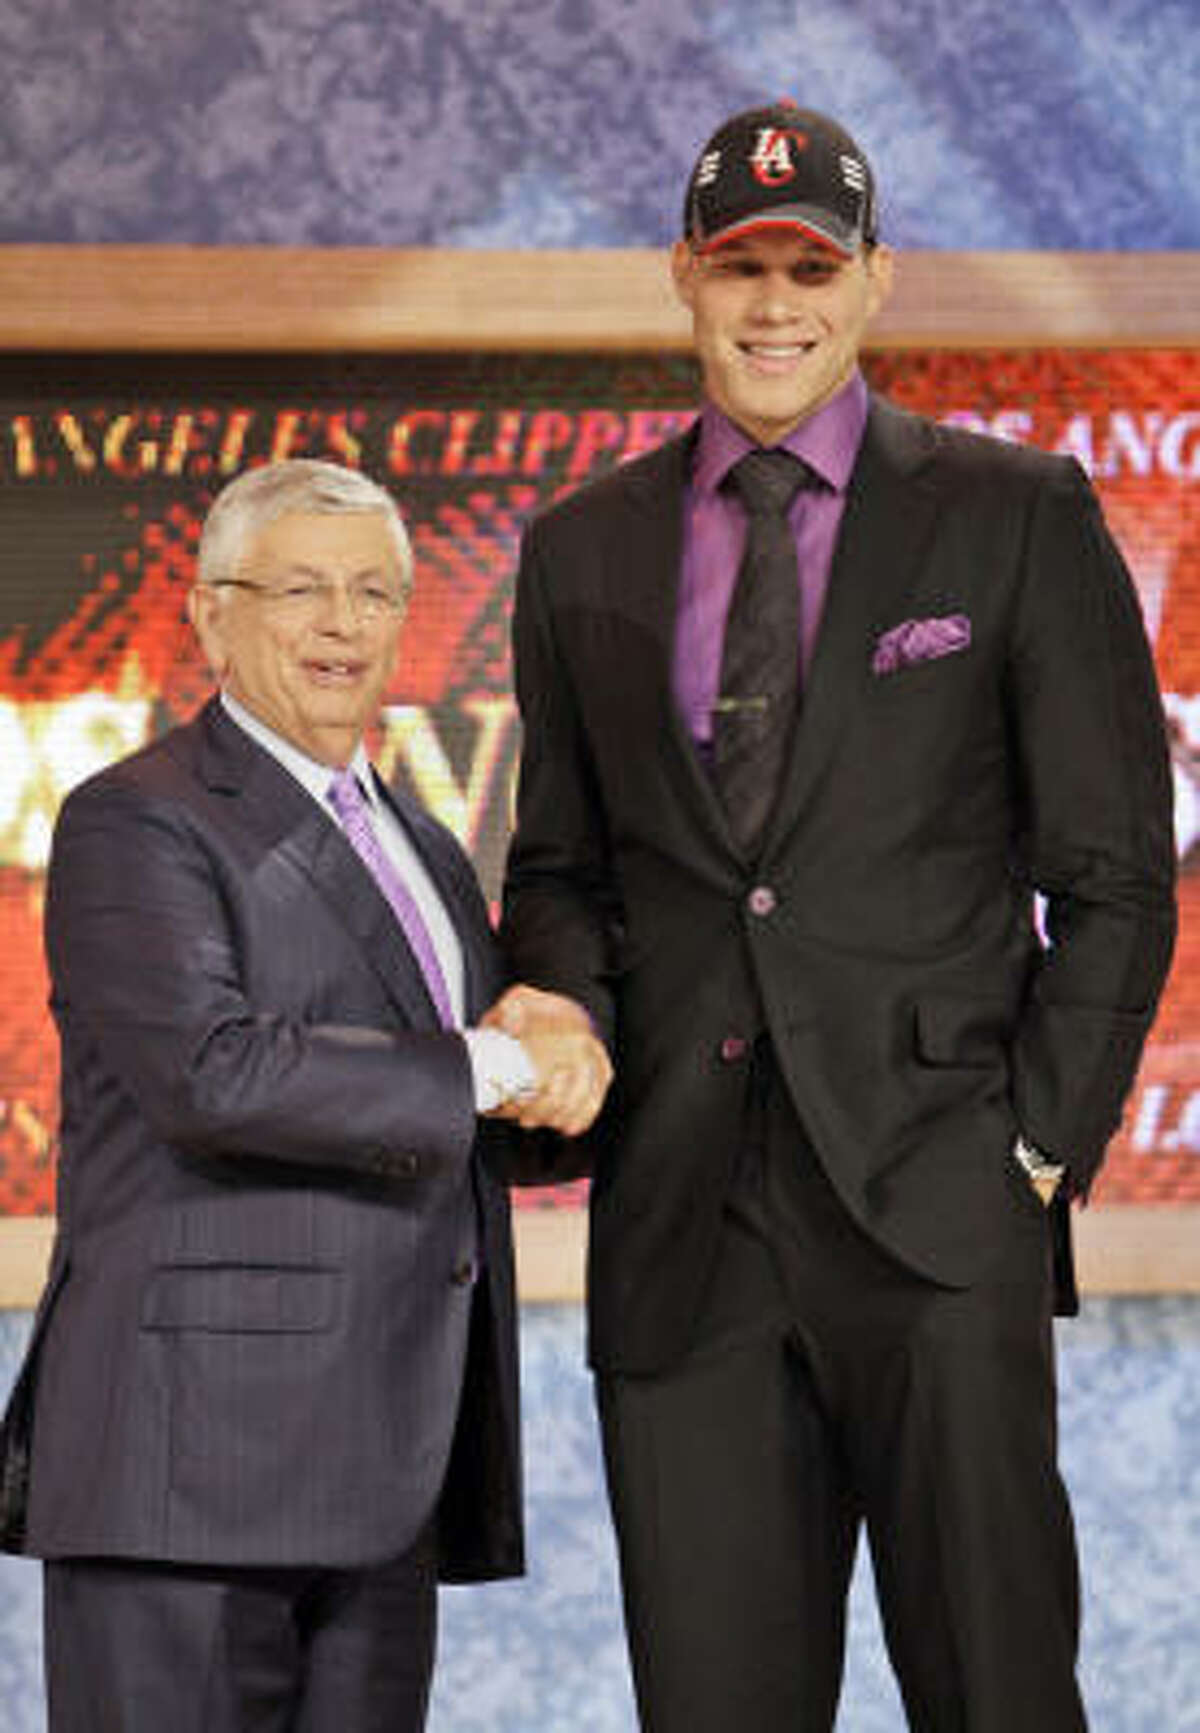 1. Los Angeles Clippers Los Angeles Clippers select Blake Griffin, a forward from Oklahoma.